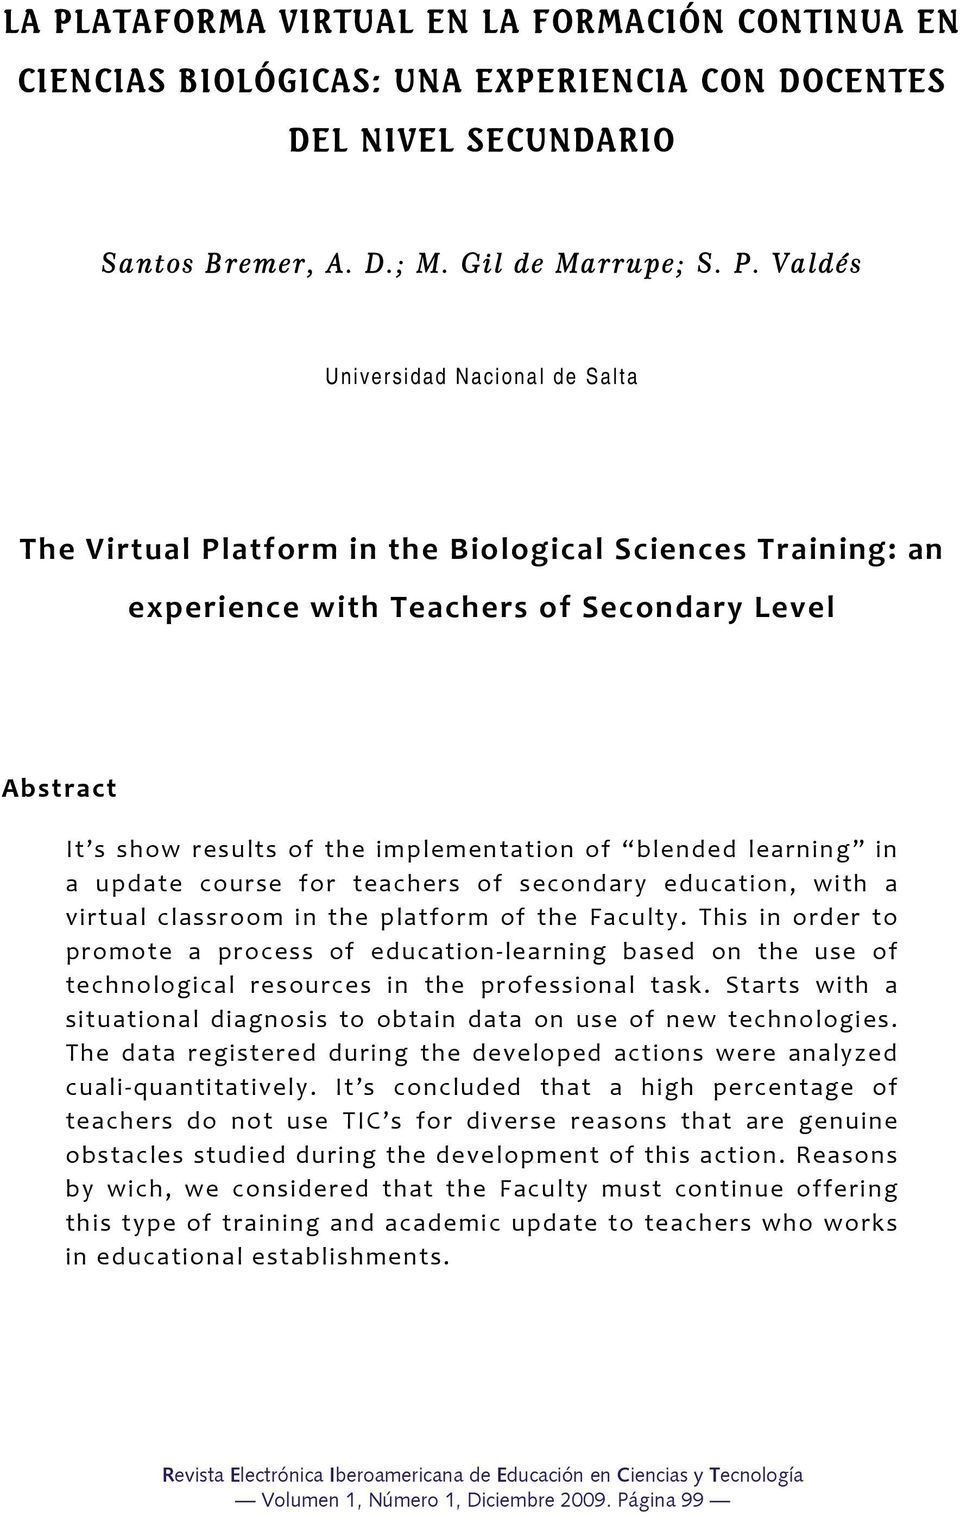 for teachers of secondary education, with a virtual classroom in the platform of the Faculty.